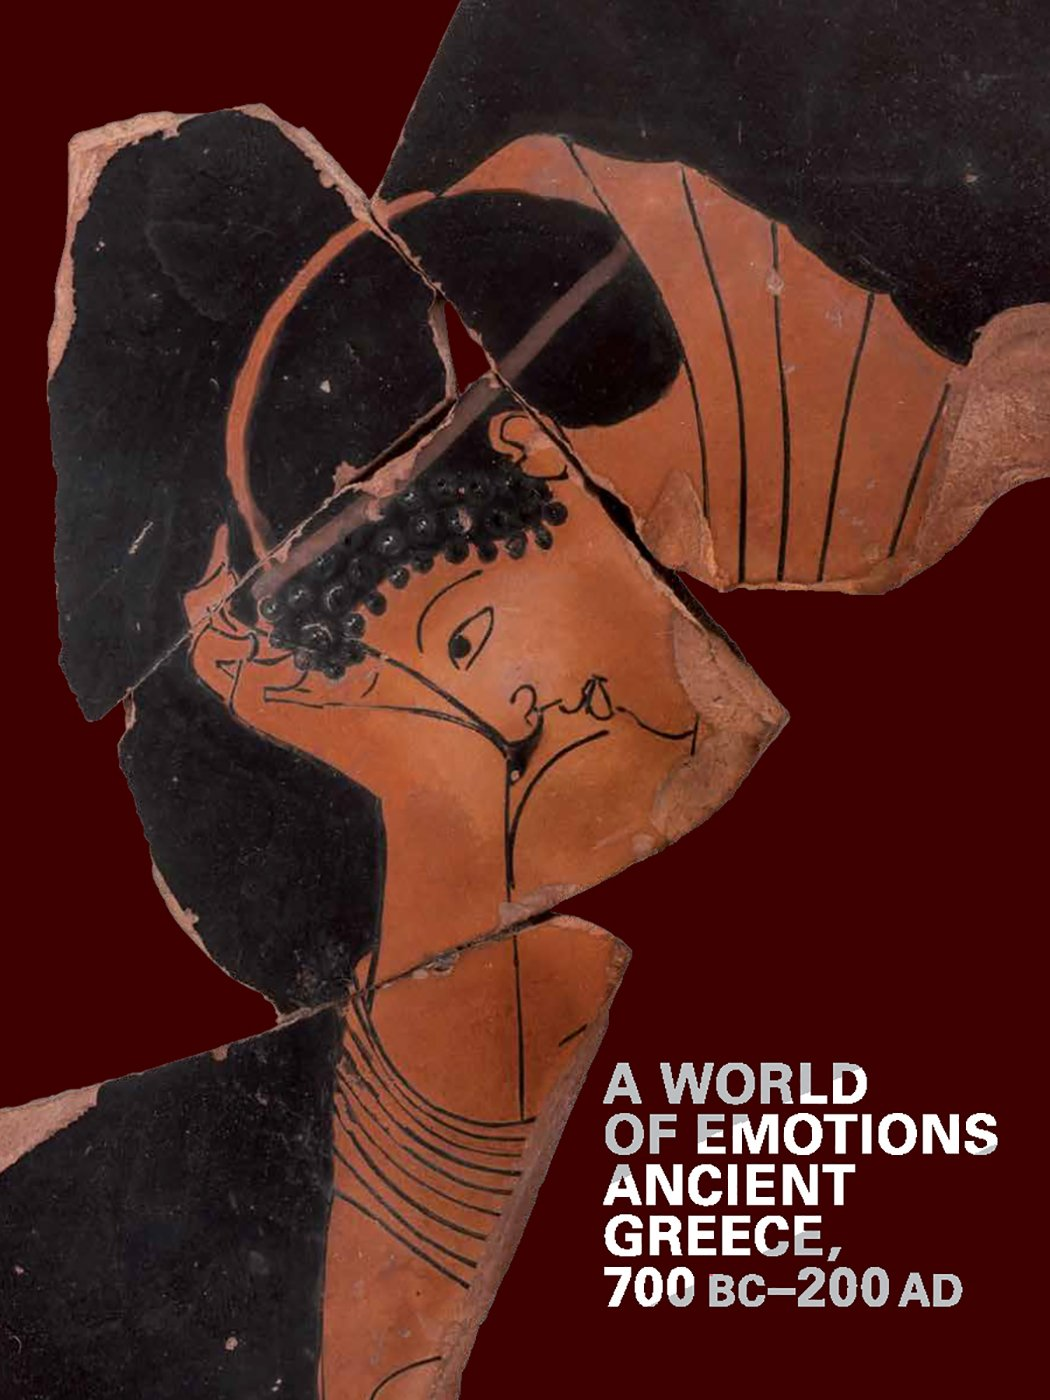 A World of Emotions: Ancient Greece, 700 BC-200 AD